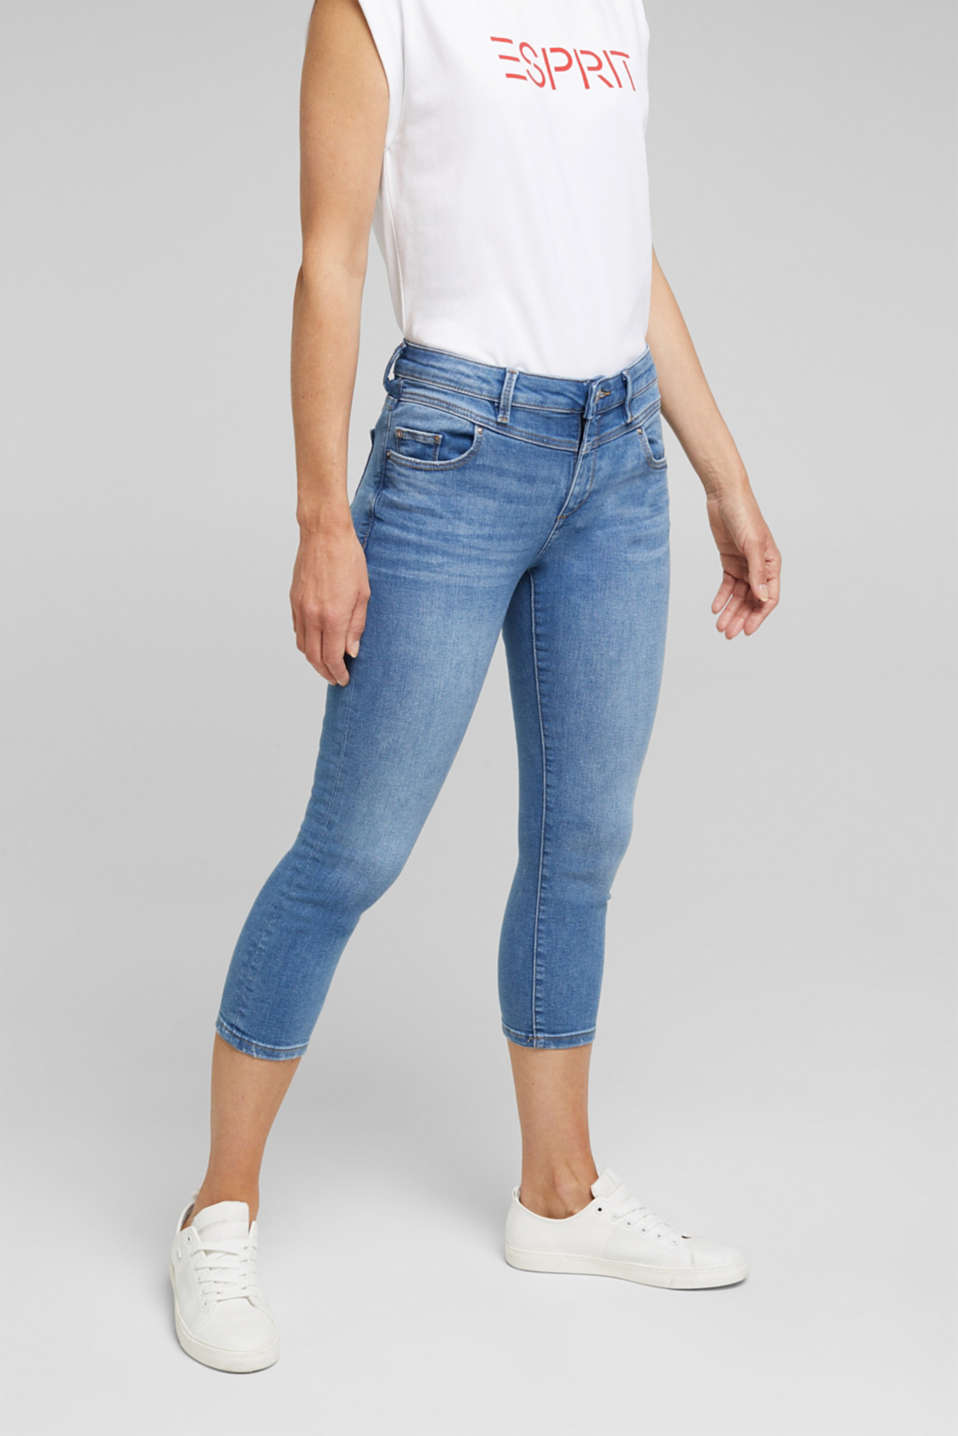 Esprit - 7/8-length jeans with organic cotton